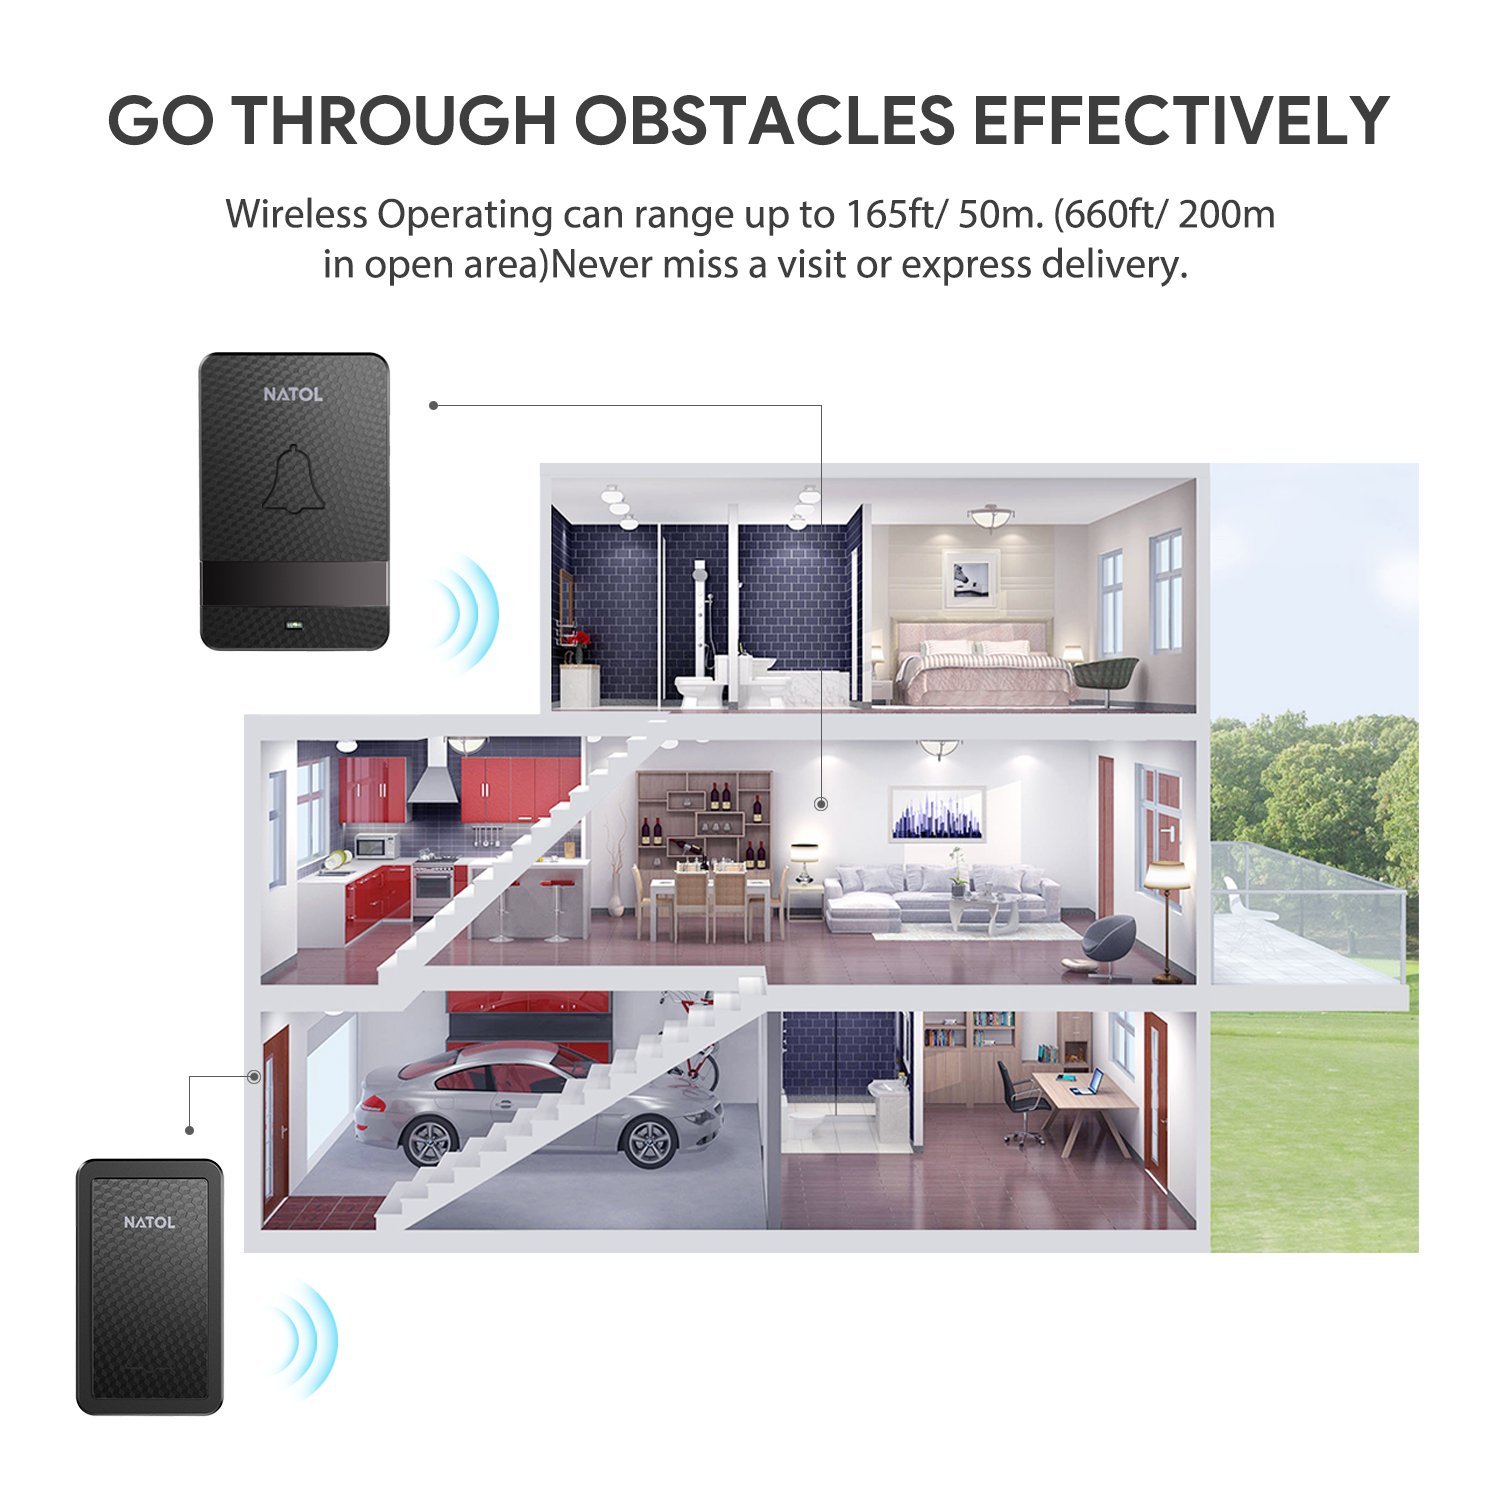 NATOL Self-Powered Wireless Doorbell Waterproof IP68, 650FT Free-Barrier Transmission with 28 Chimes and 4 Adjustable Volumes, (NT-WD02, Black)